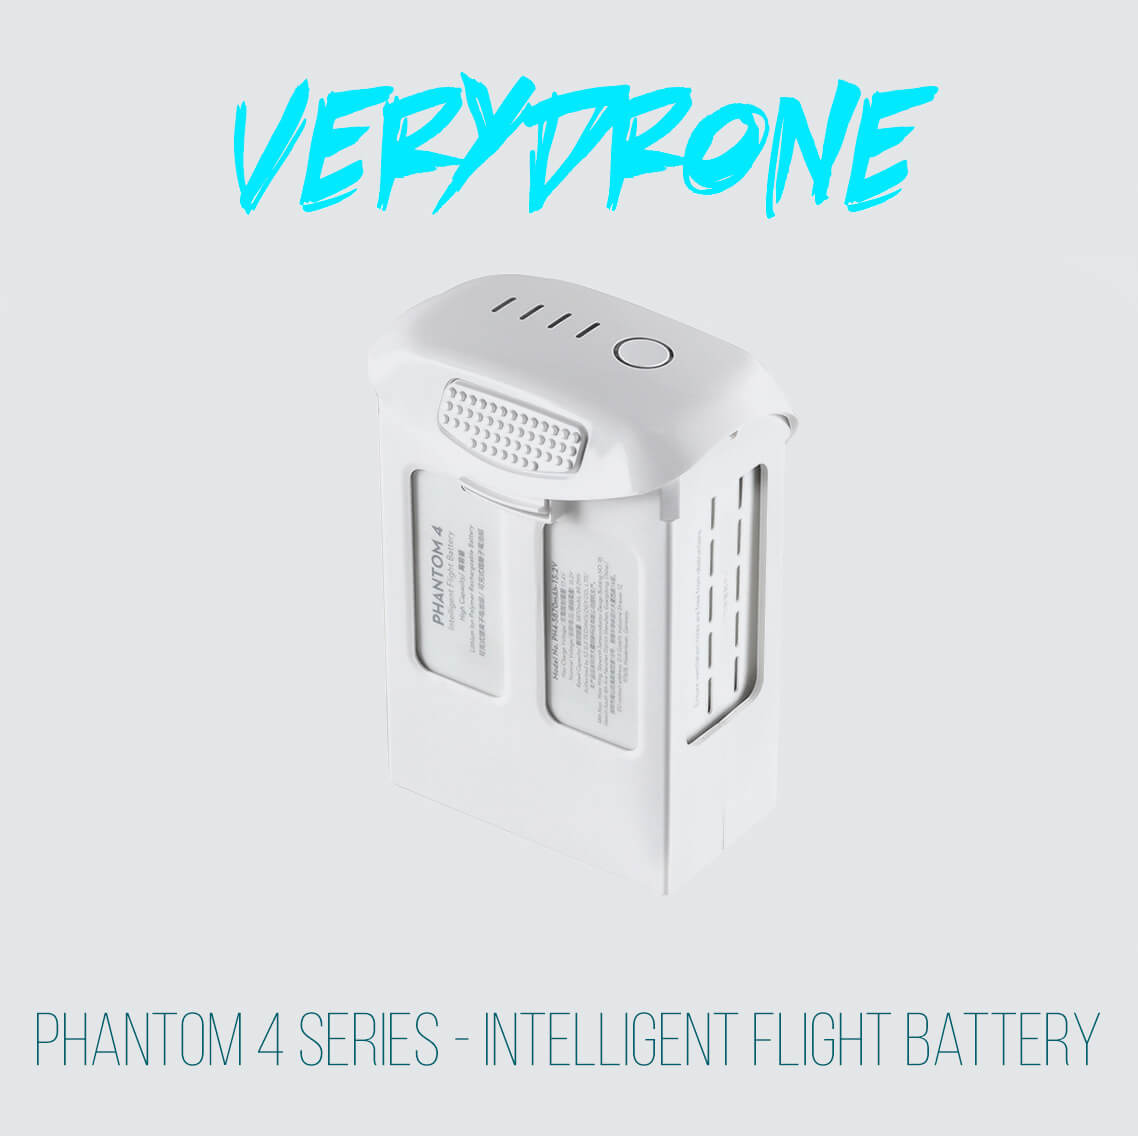 Phantom 4 Series - Intelligent Flight Battery (5870mAh, High Capacity)